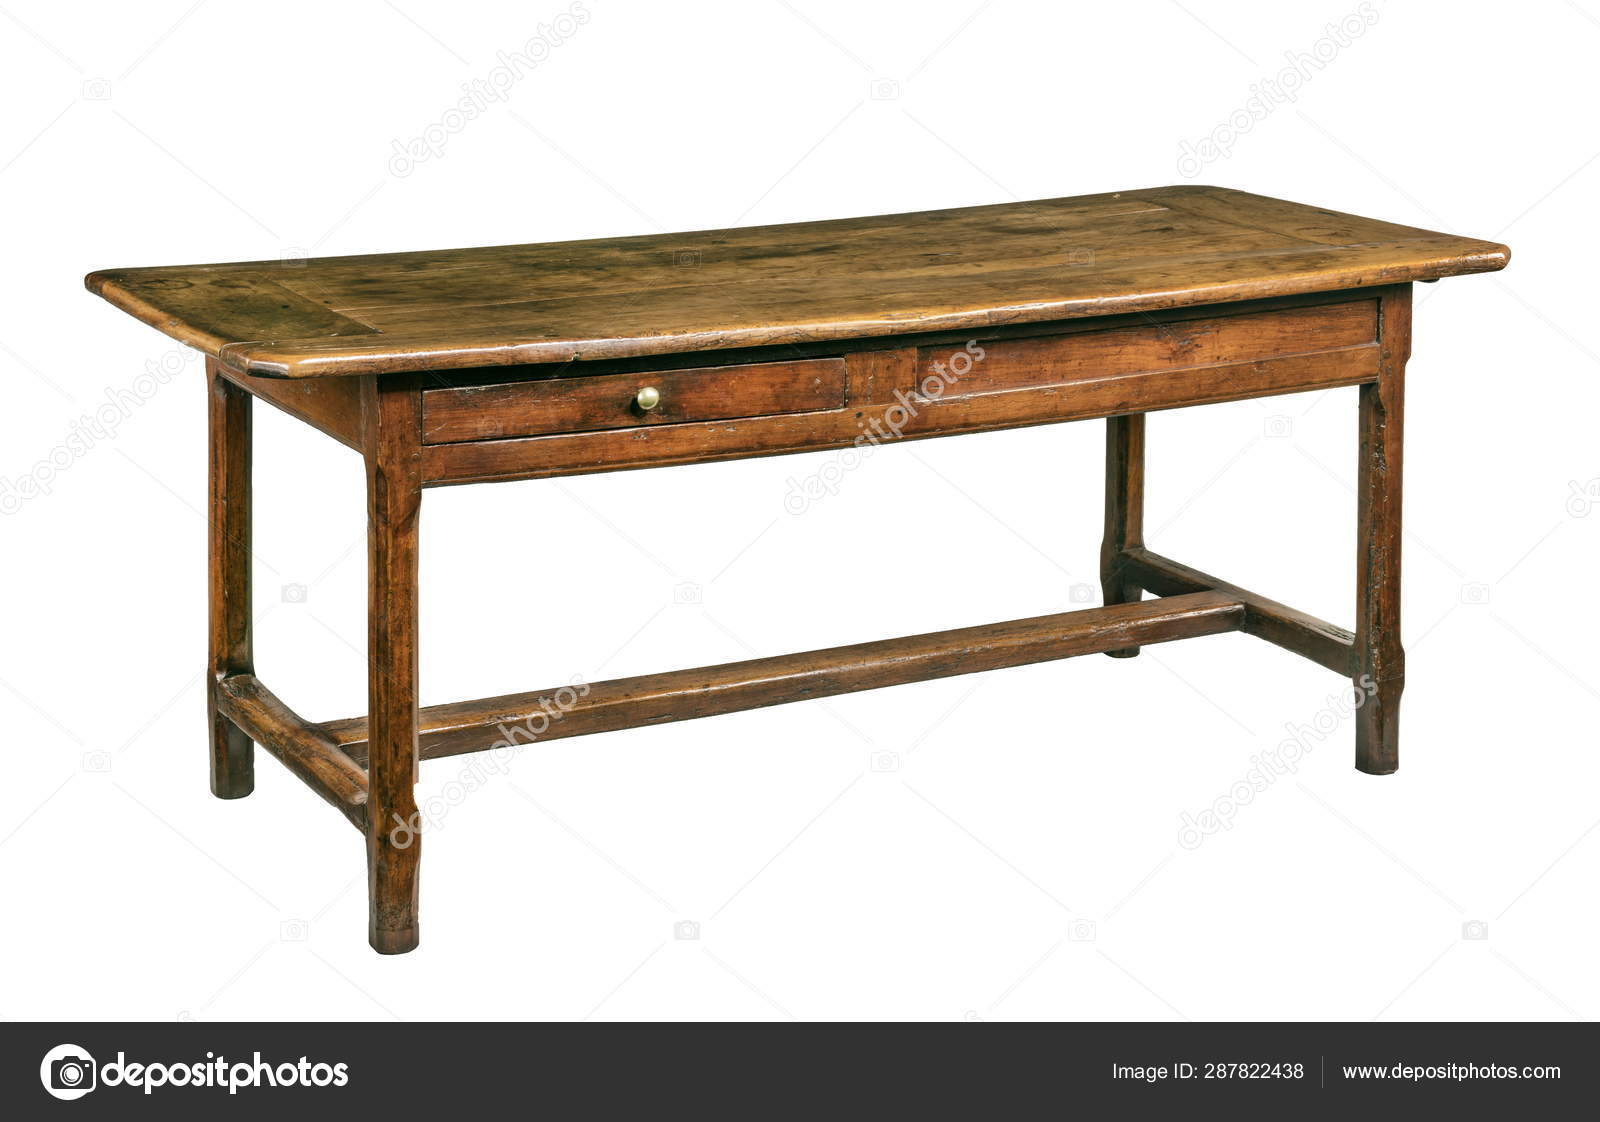 Old kitchen table French style — Stock Photo © JAK30 #287822438